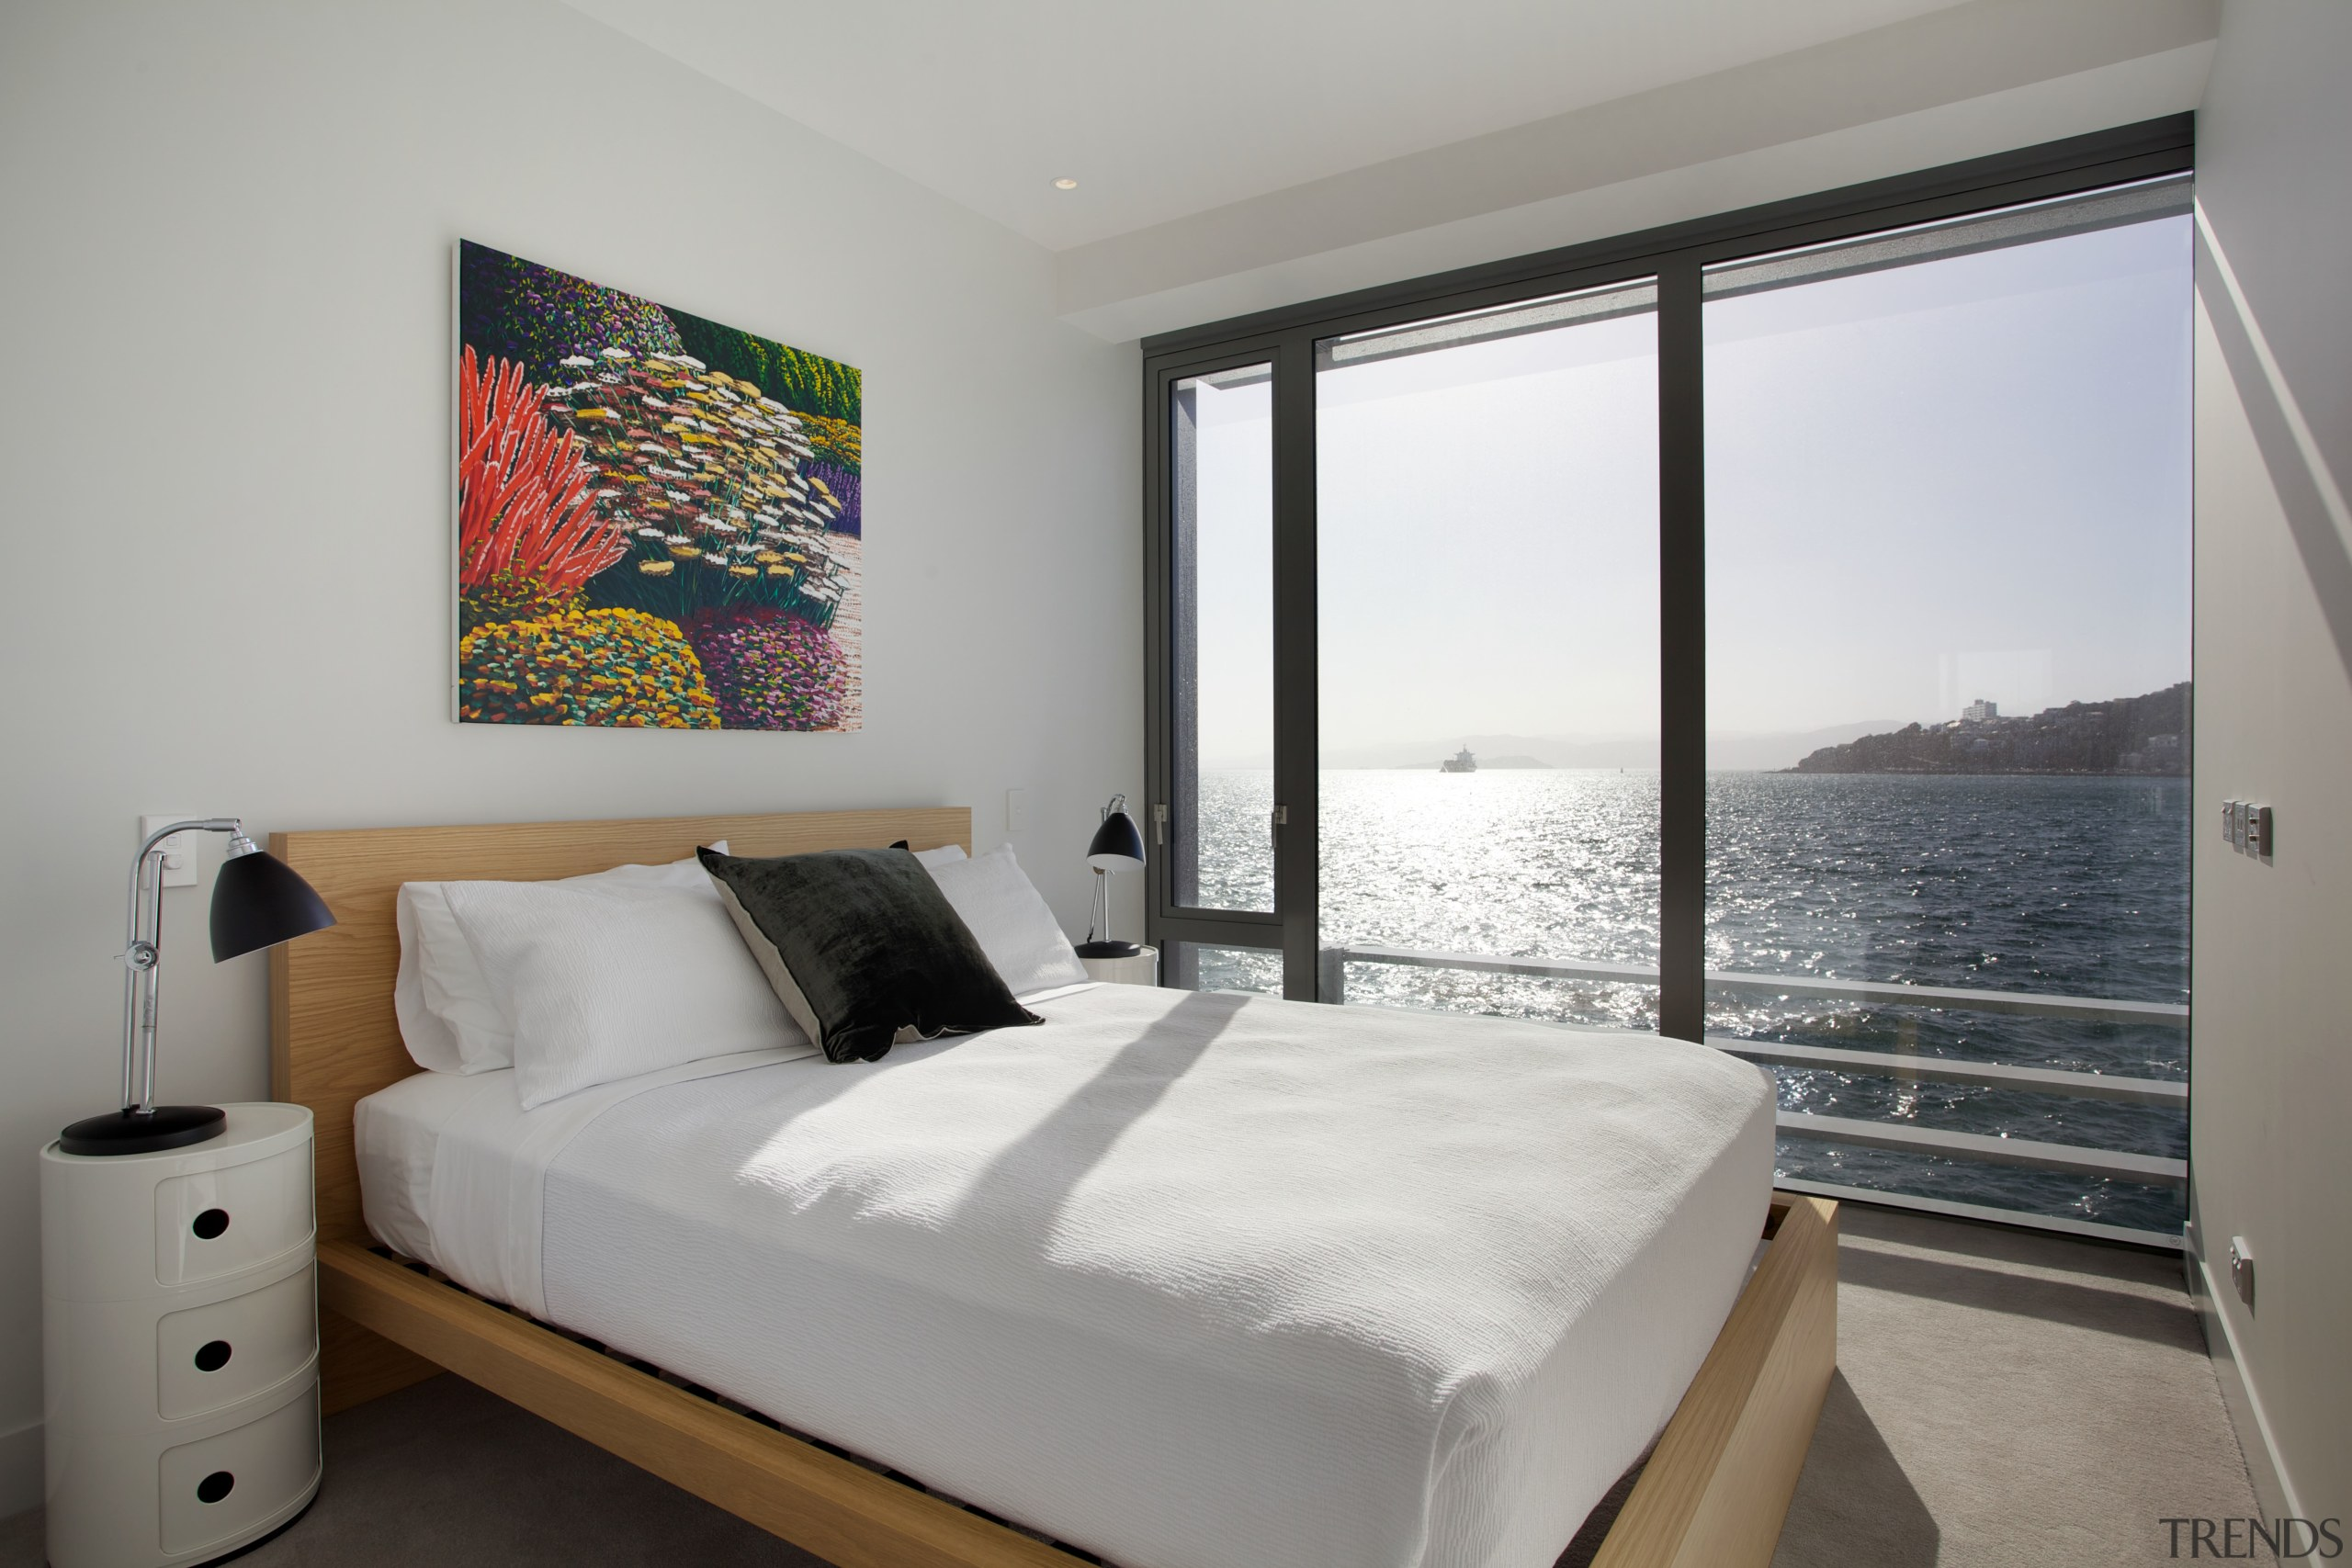 Bedrooms in the Clyde Quay Wharf apartment development bed frame, bedroom, home, interior design, property, real estate, room, suite, wall, window, gray